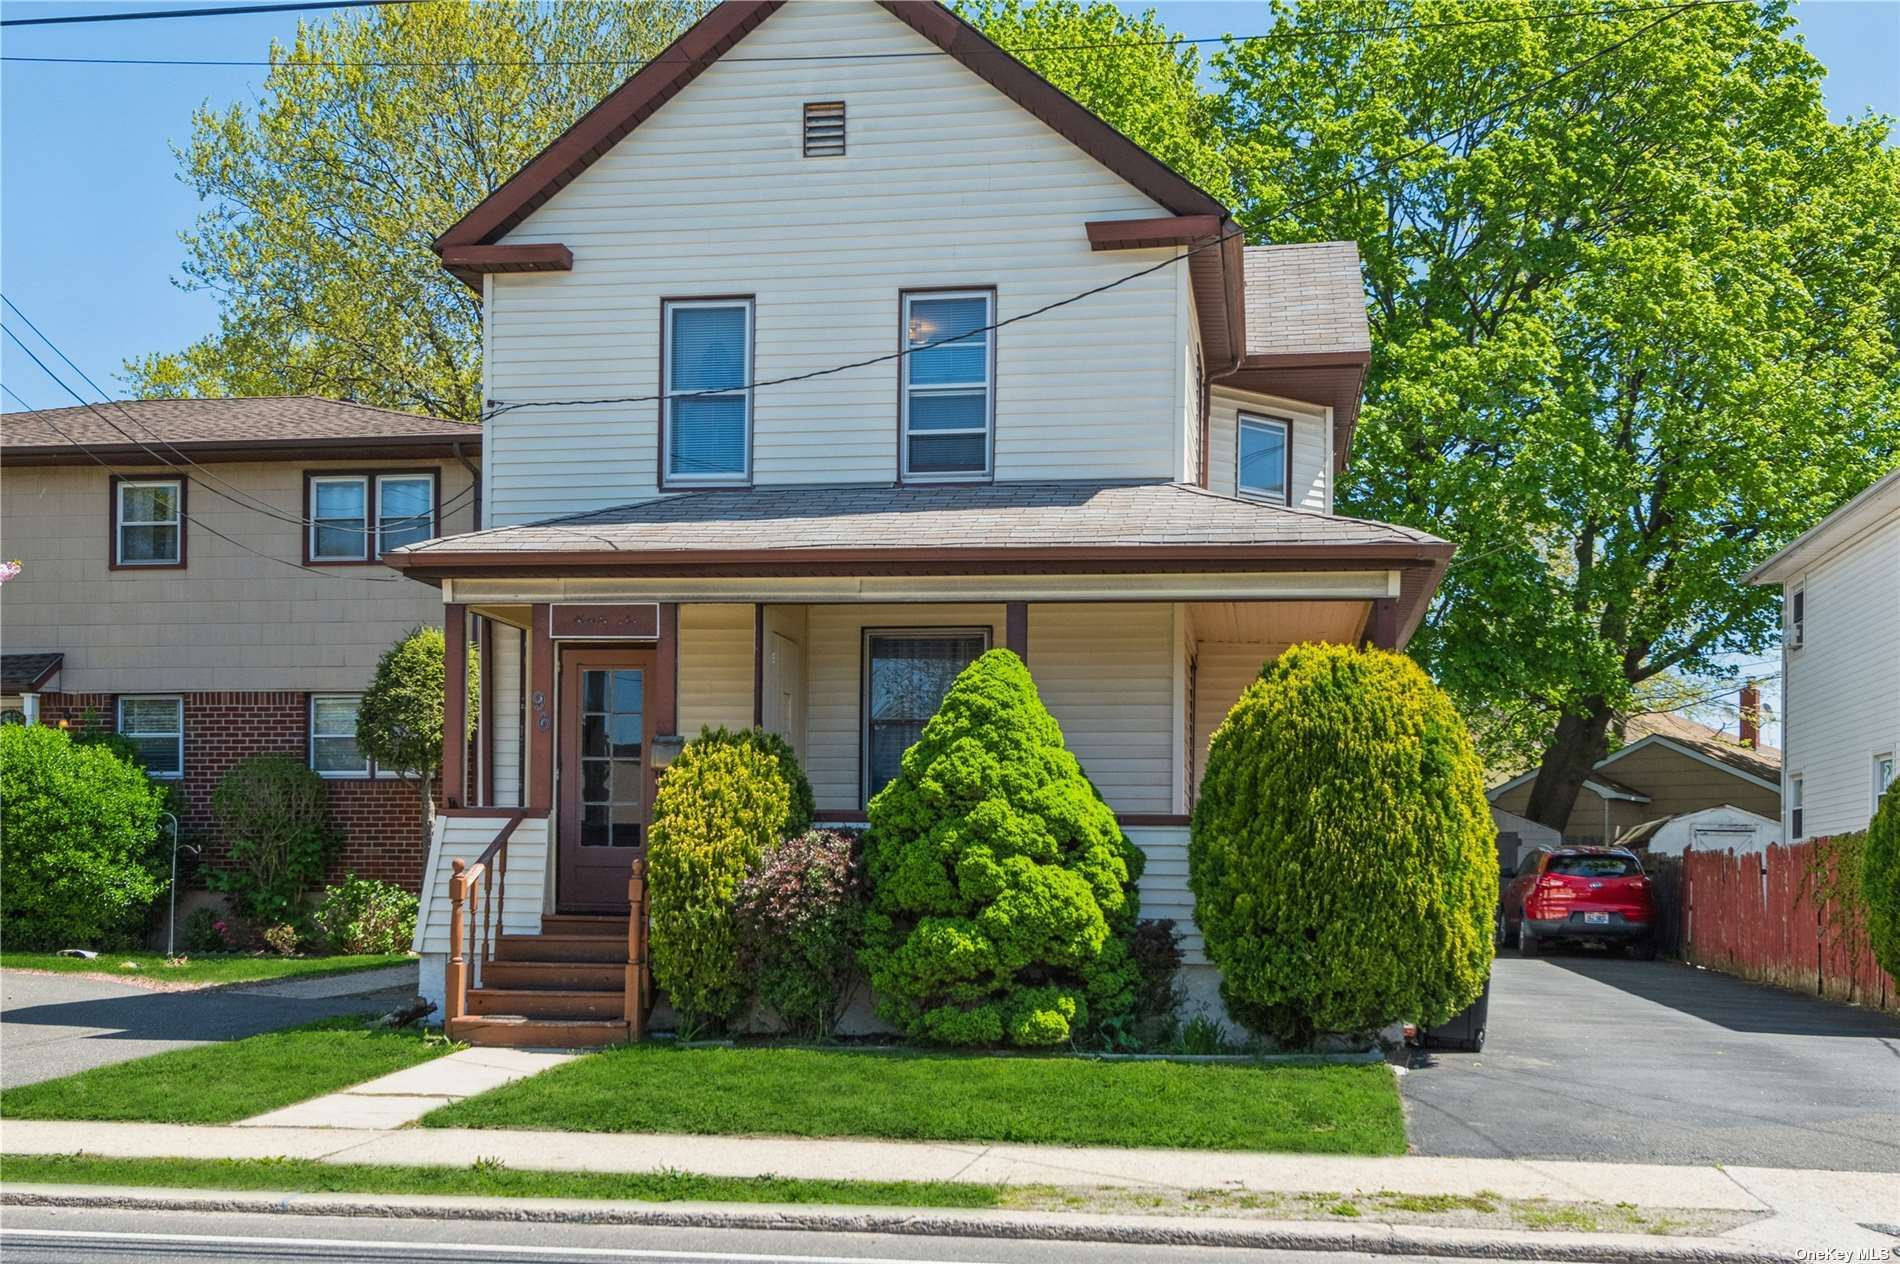 96 New Hyde Park Road, Franklin Square, NY 11010 - MLS#: 3308963